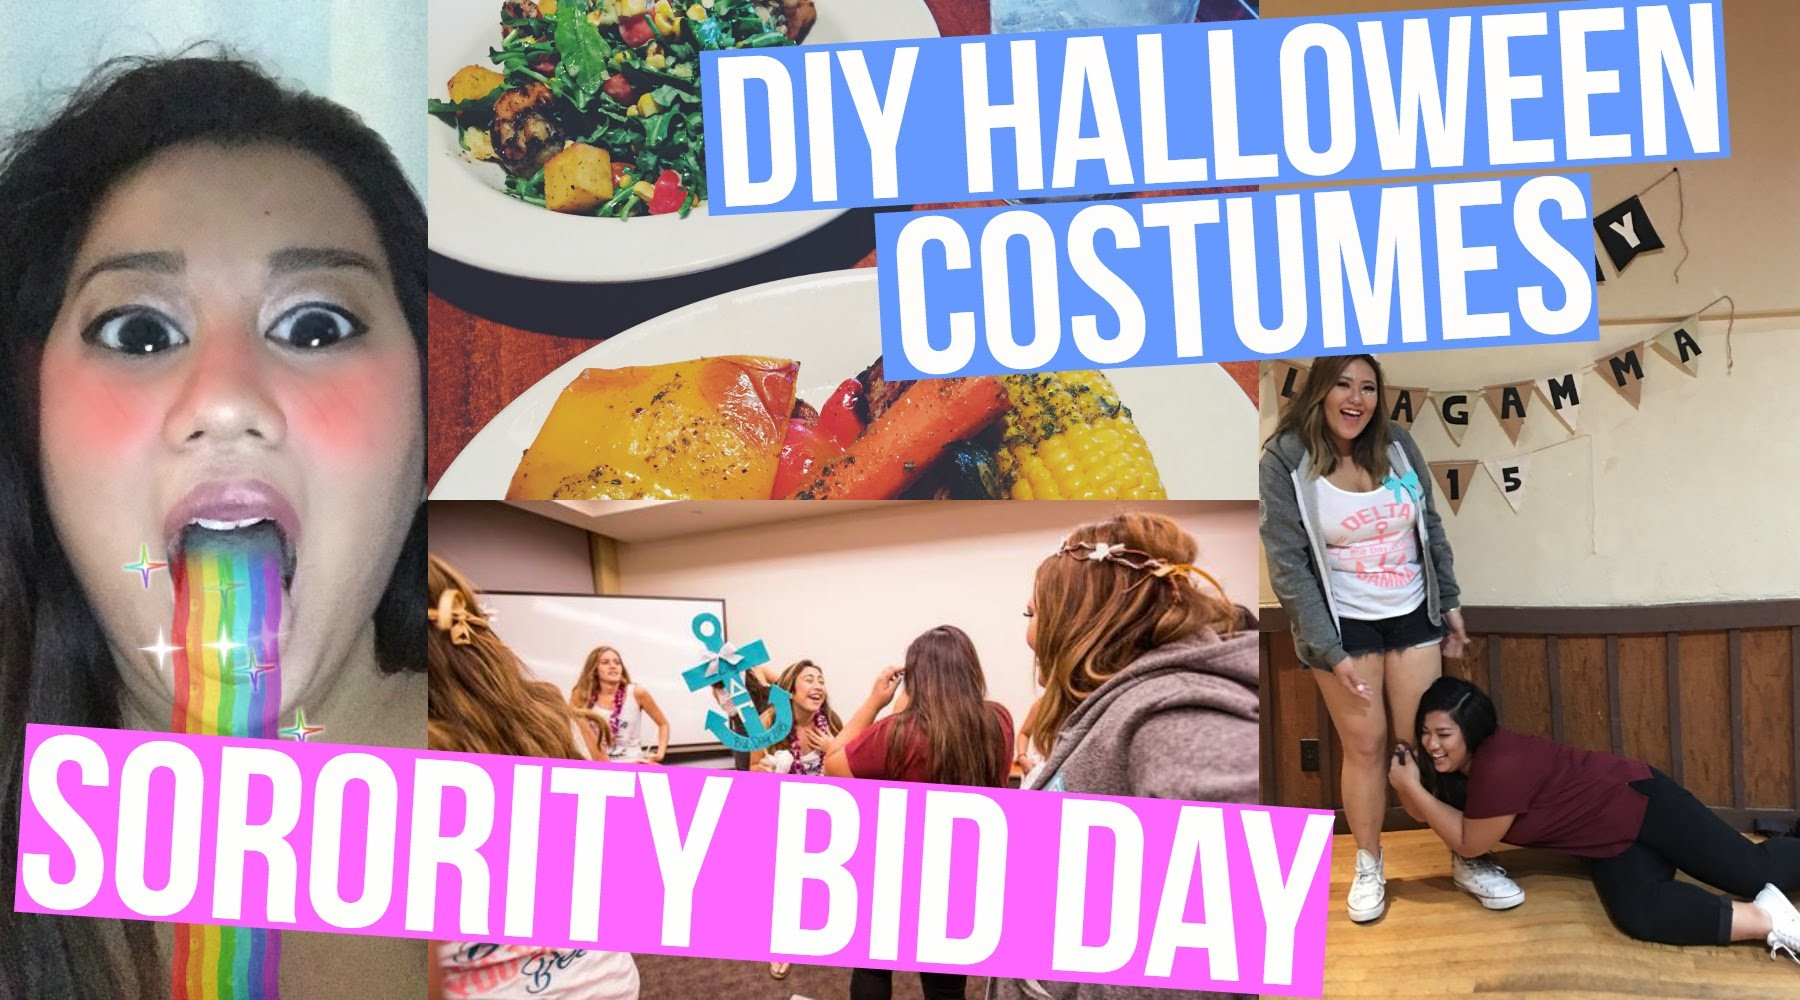 DIY HALLOWEEN COSTUMES + SORORITY BID DAY!!